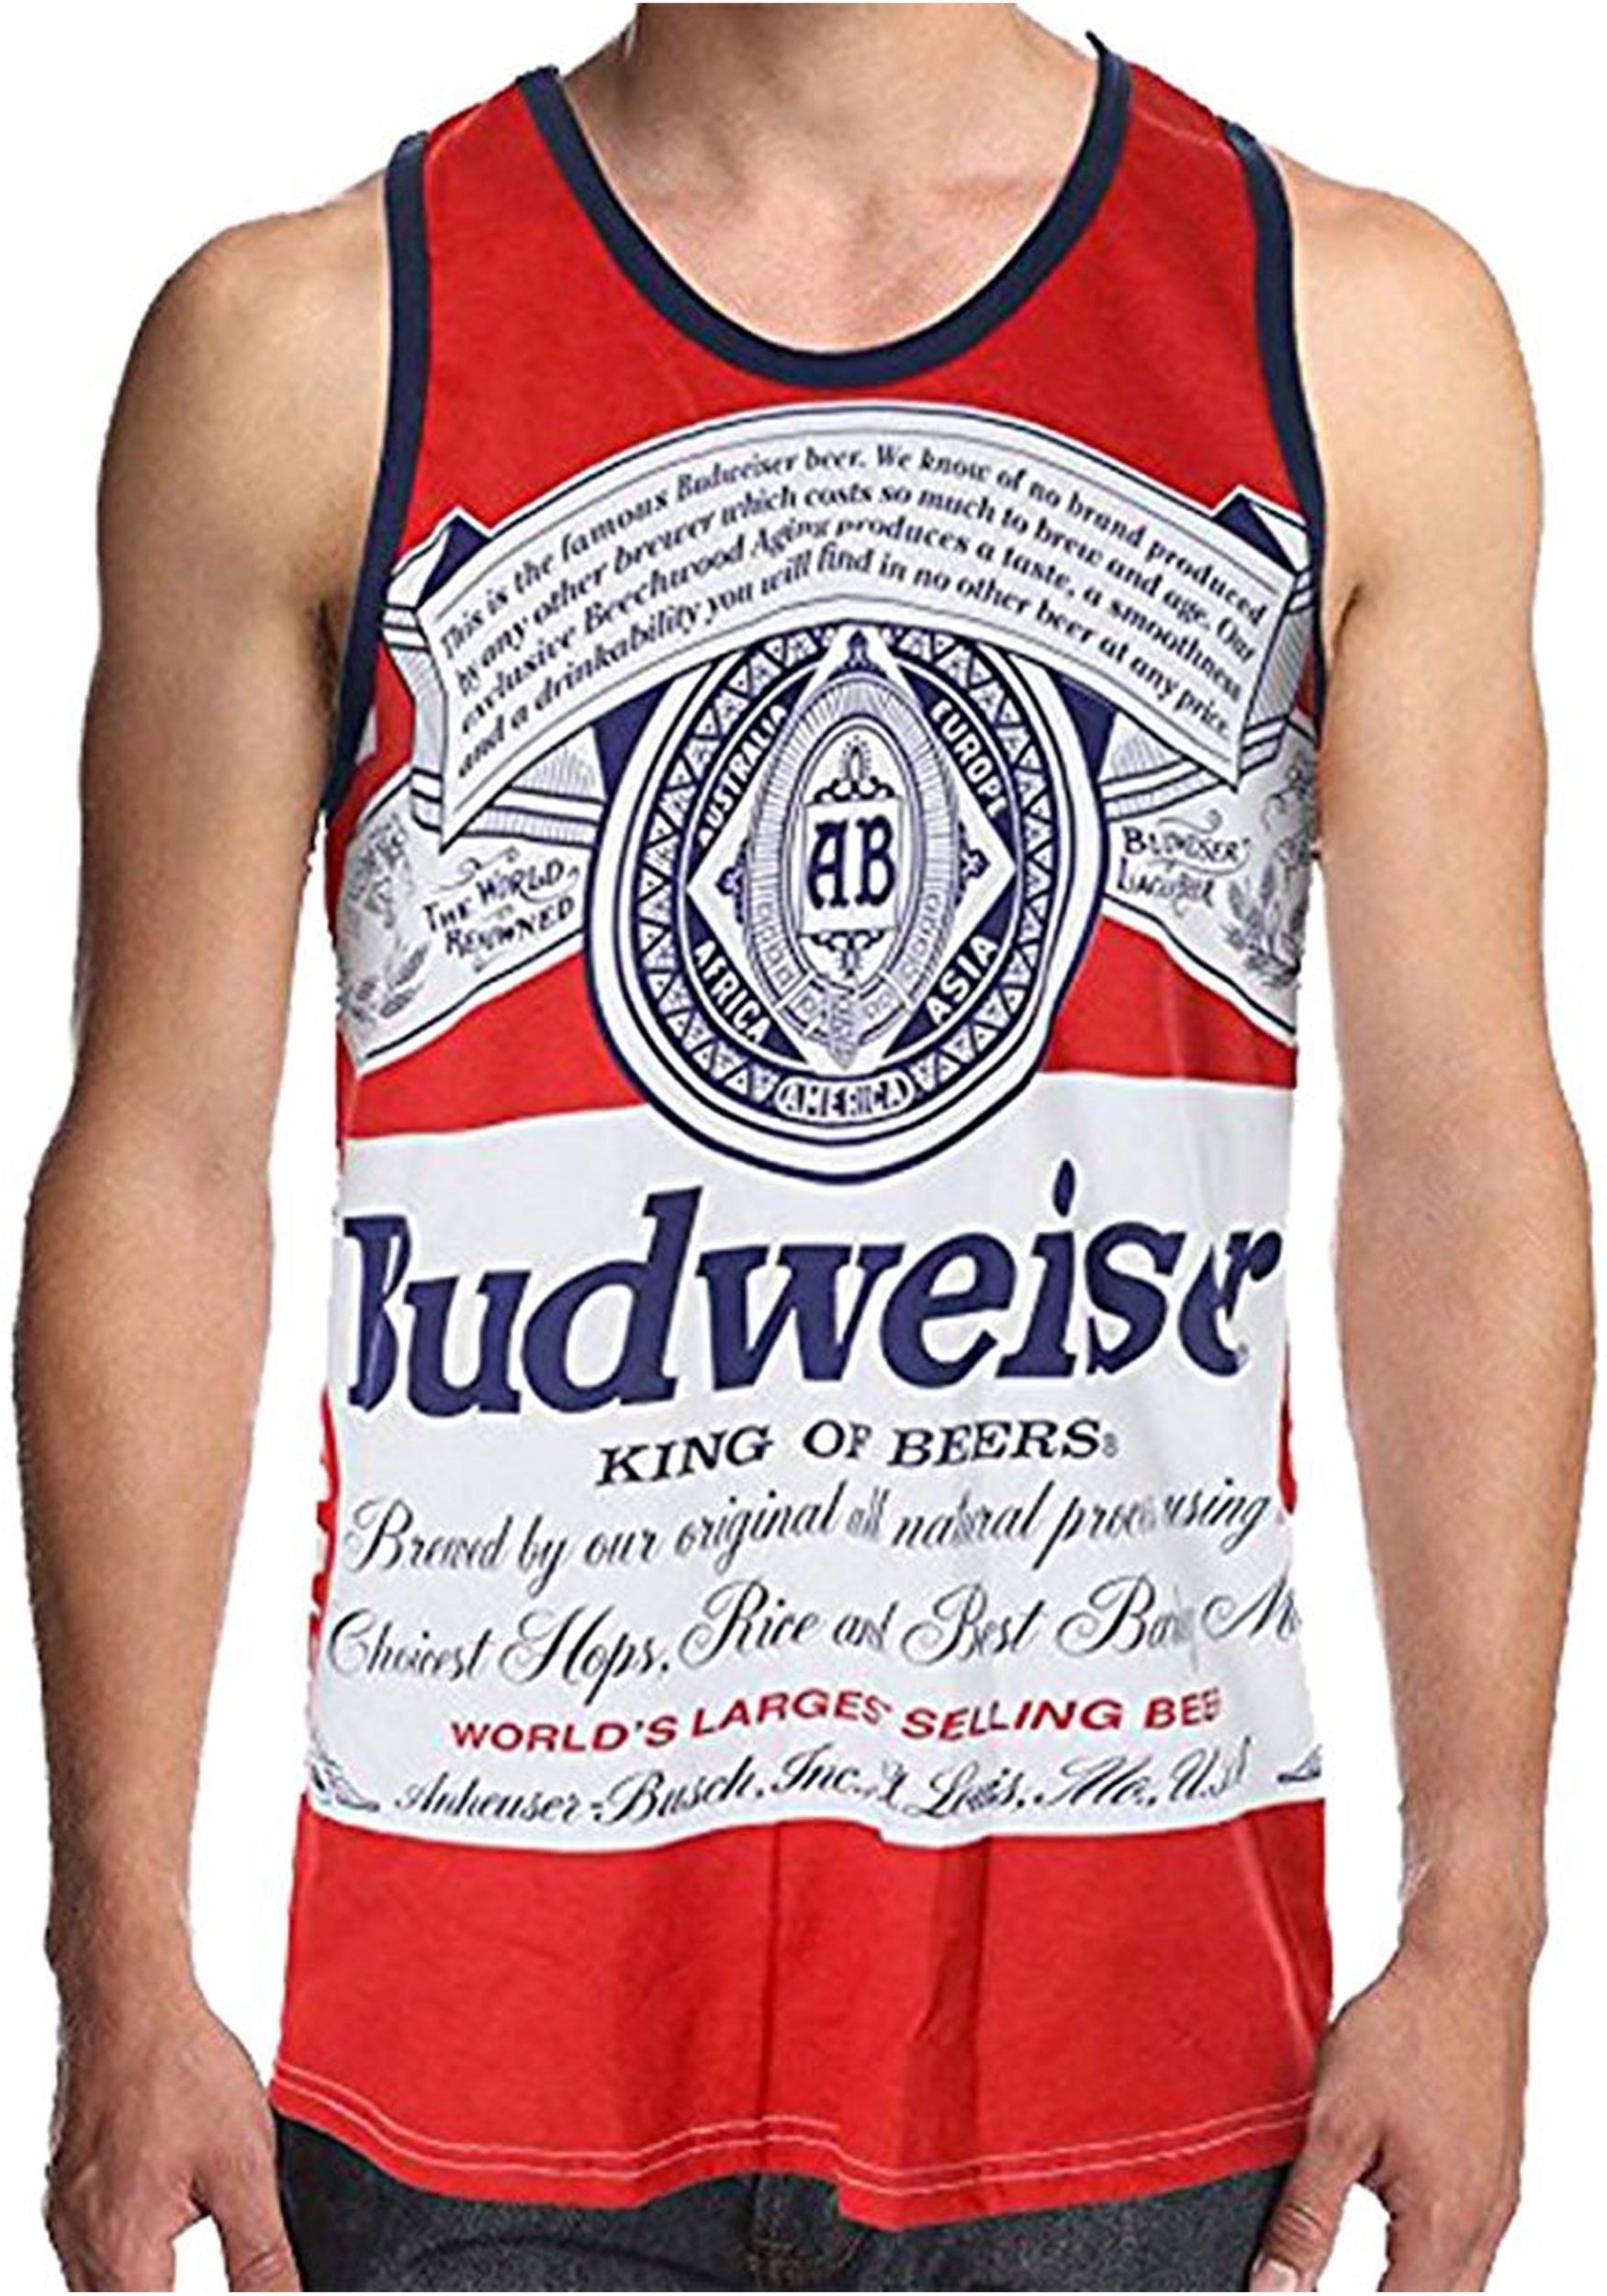 44b47e8271f0a Men's Budweiser King of Beers Faded Tank